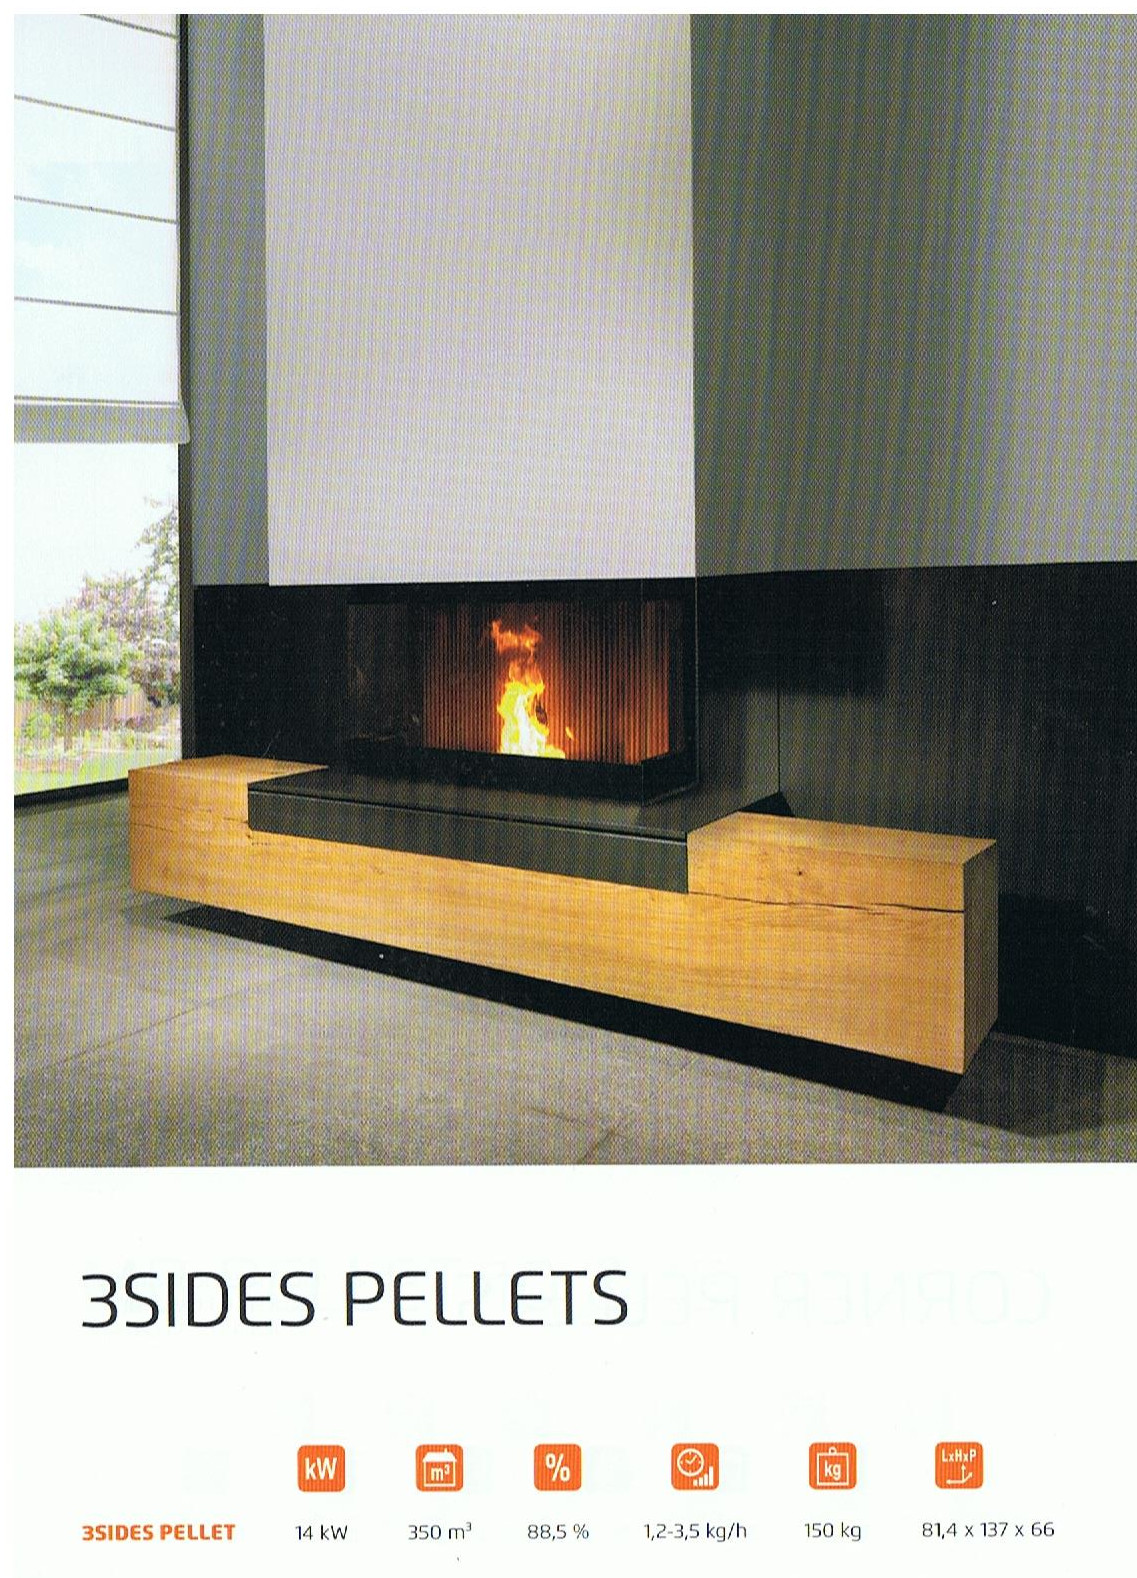 Gallus - 3 Sides Pellets